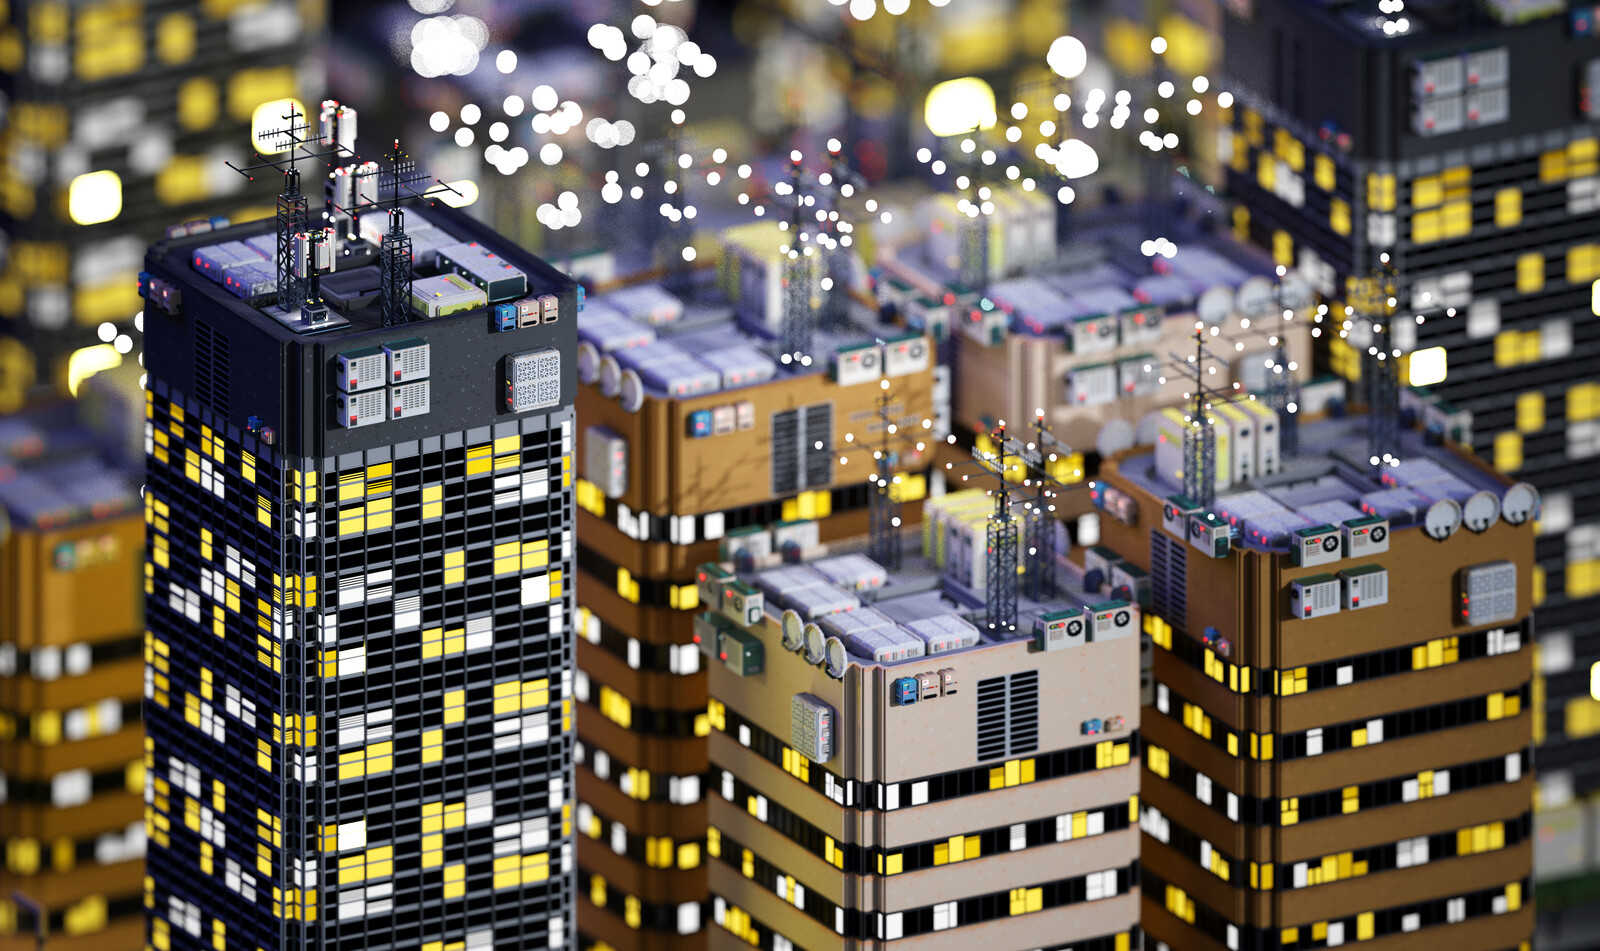 Voxel Game Project - Skyscraper n°3 - Night